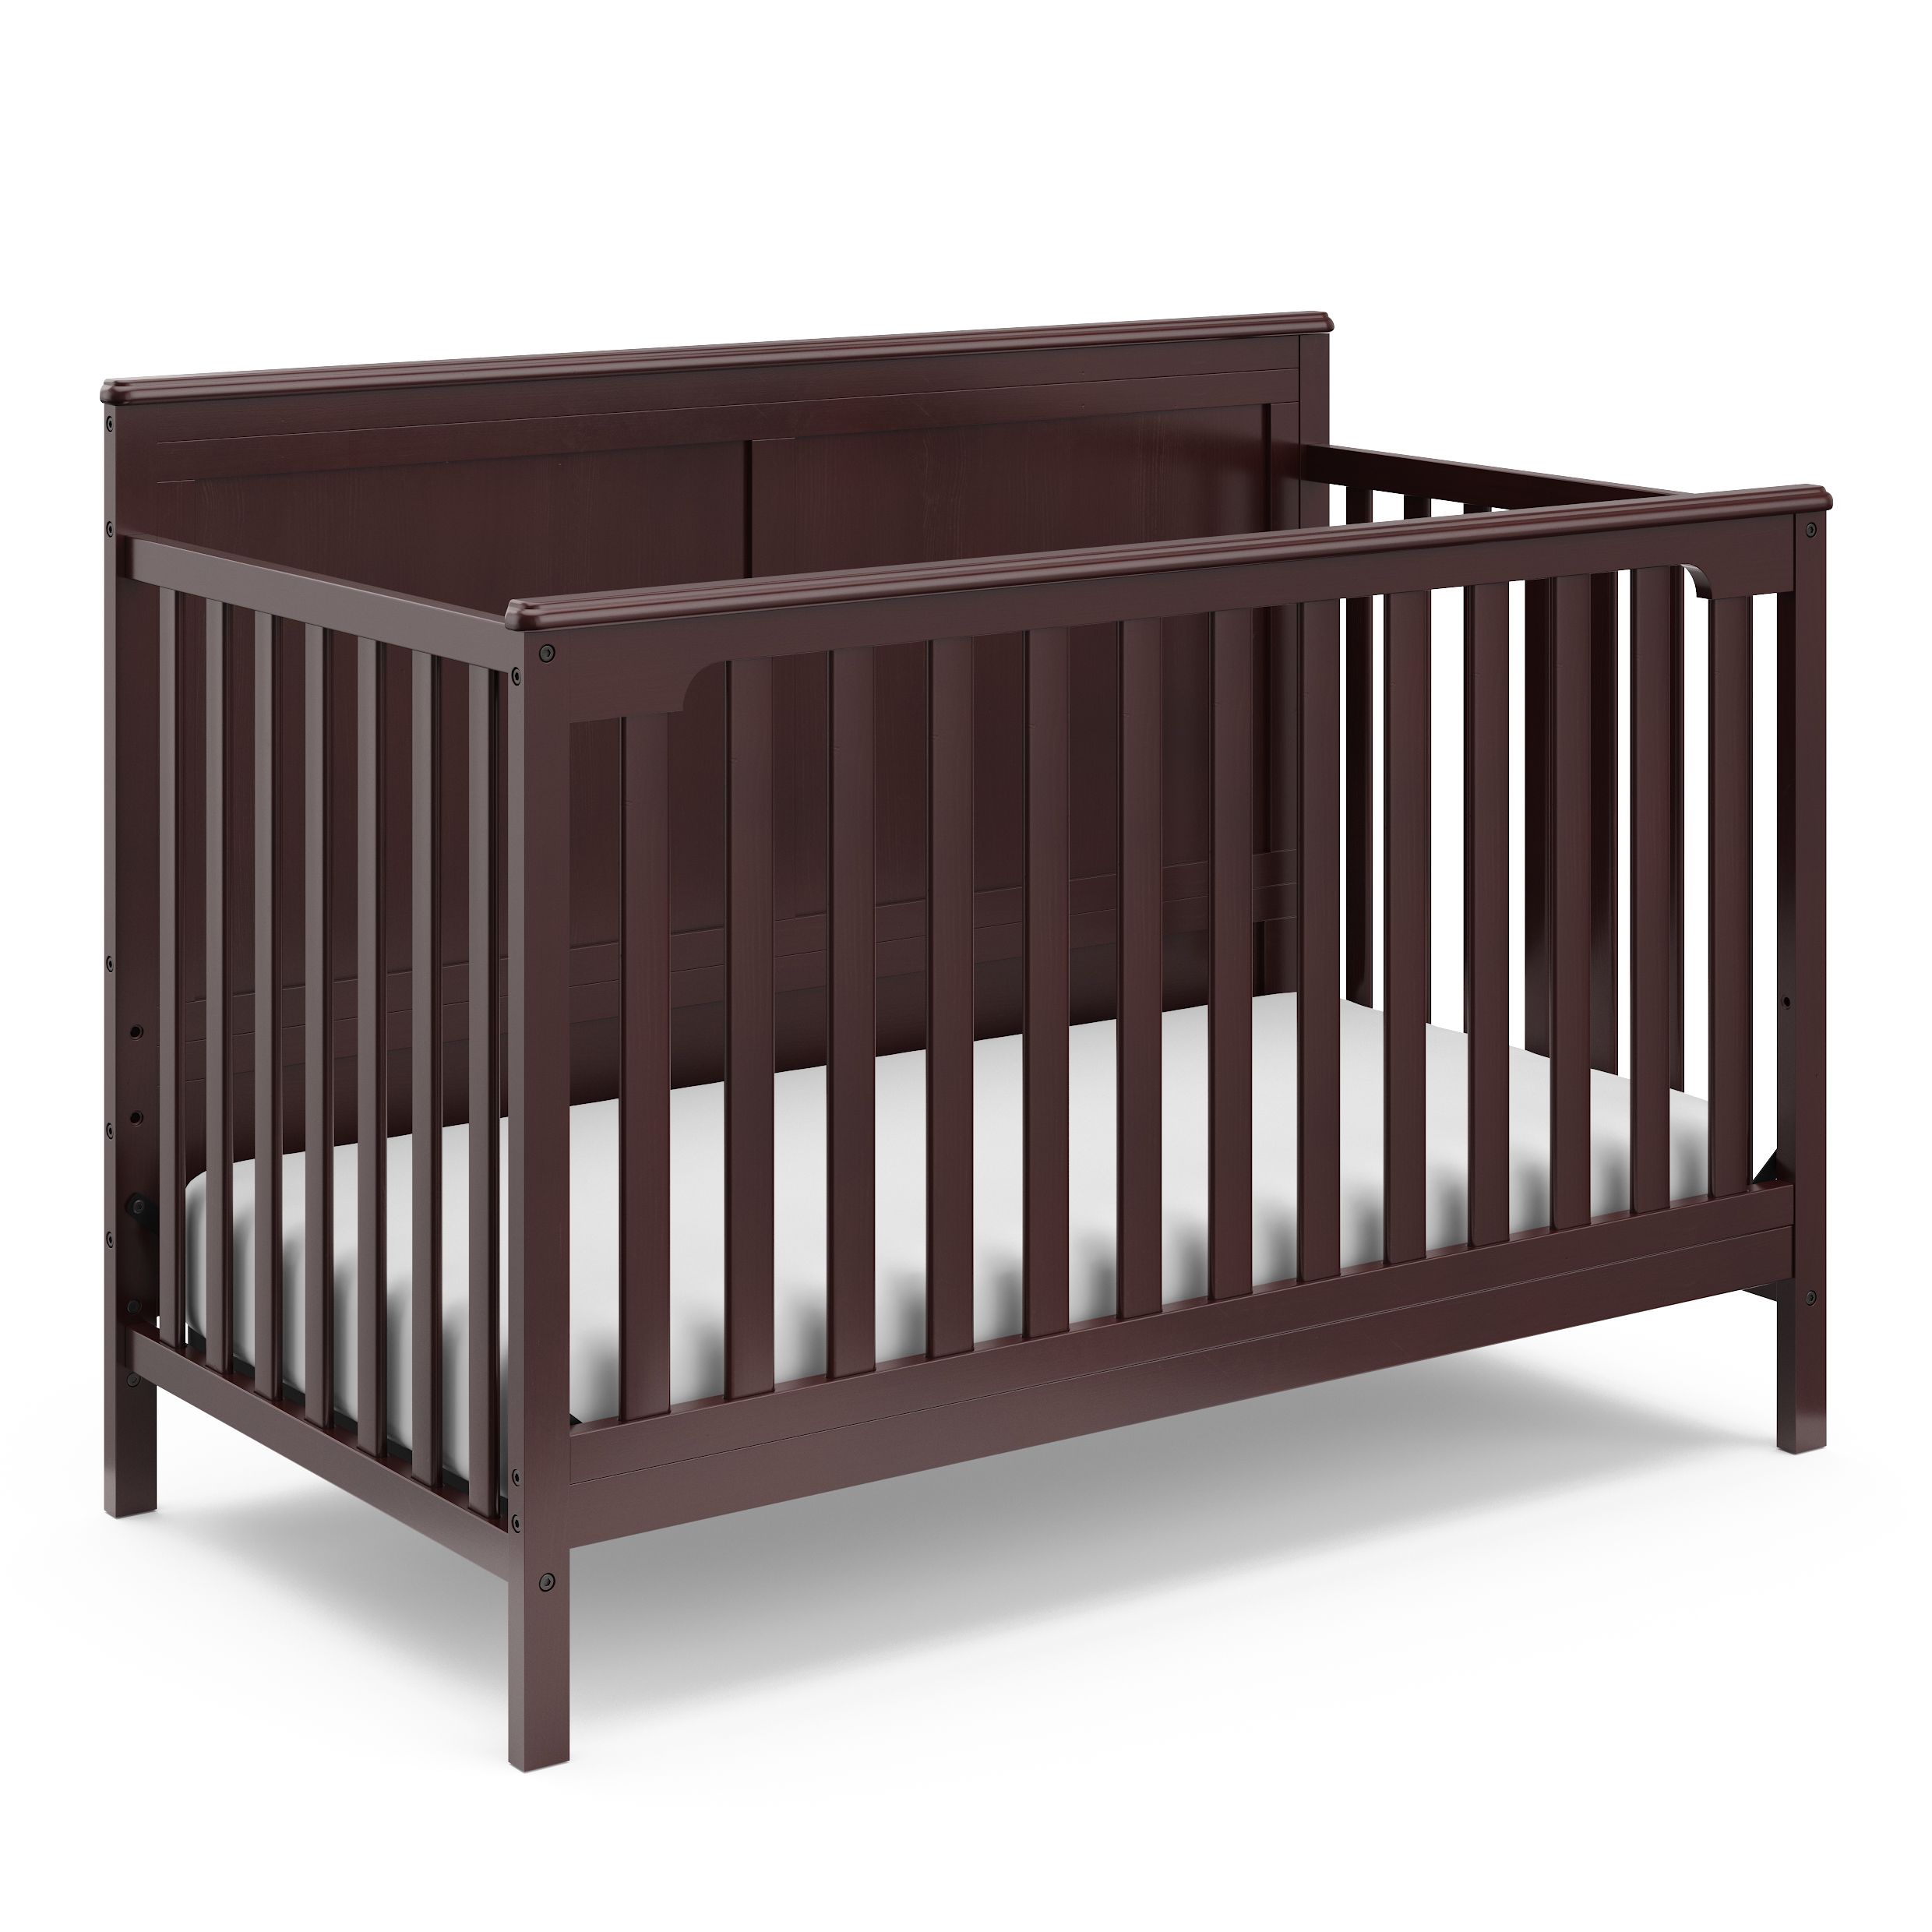 Storkcraft Alpine 4-in-1 Convertible Crib Espresso